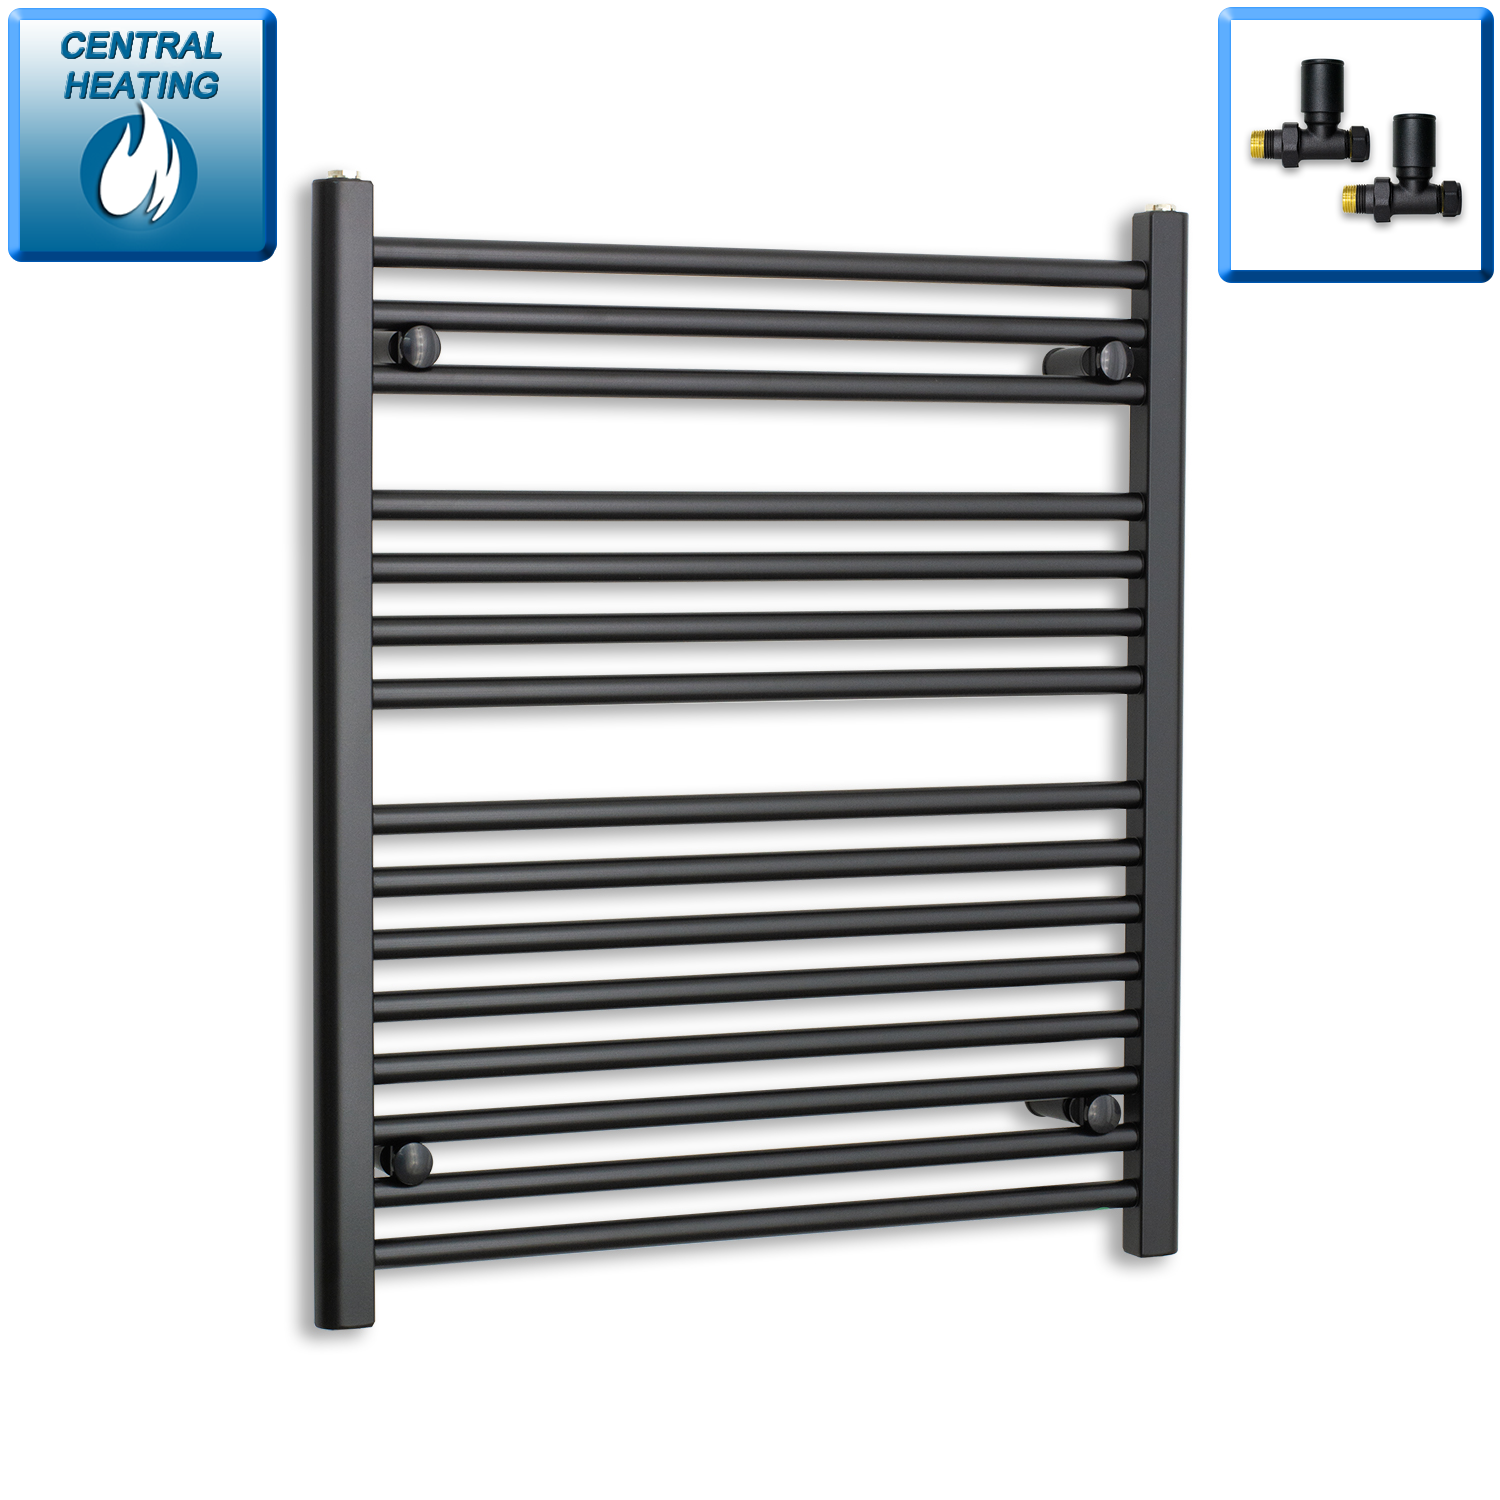 700mm Wide 800mm High Black Towel Rail Radiator With Straight Valve